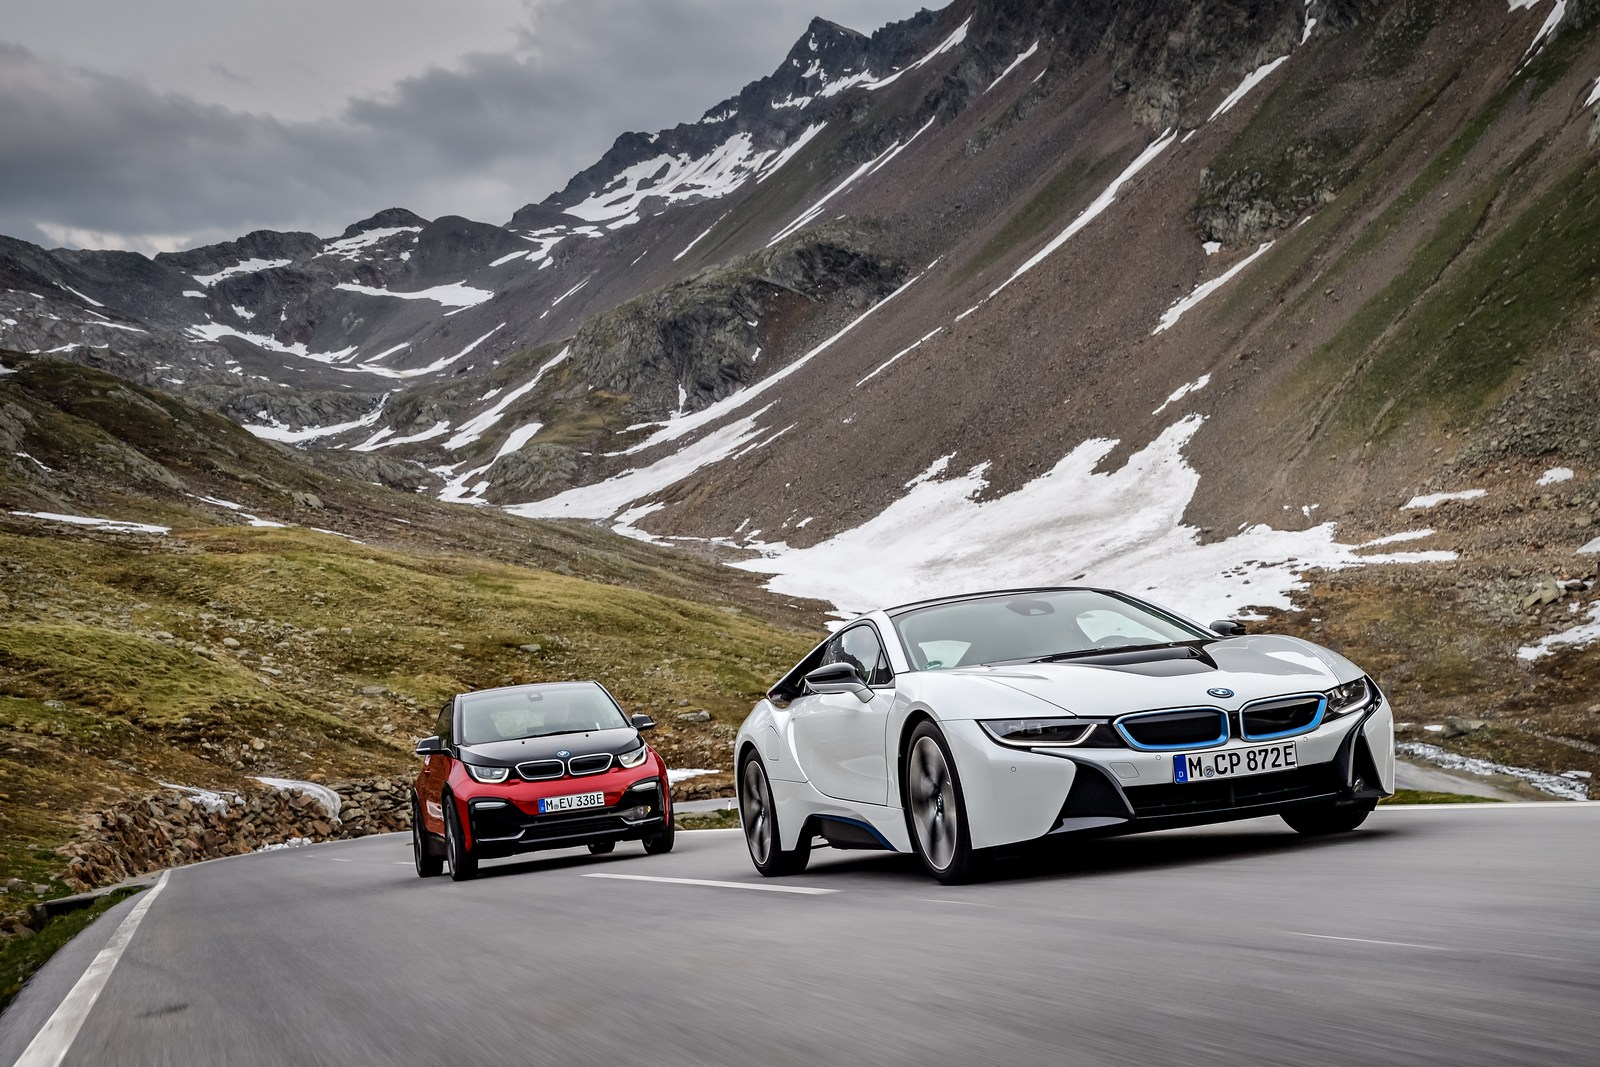 BMW i3 Electric City Car to Get Much Needed Range Boost in 2018